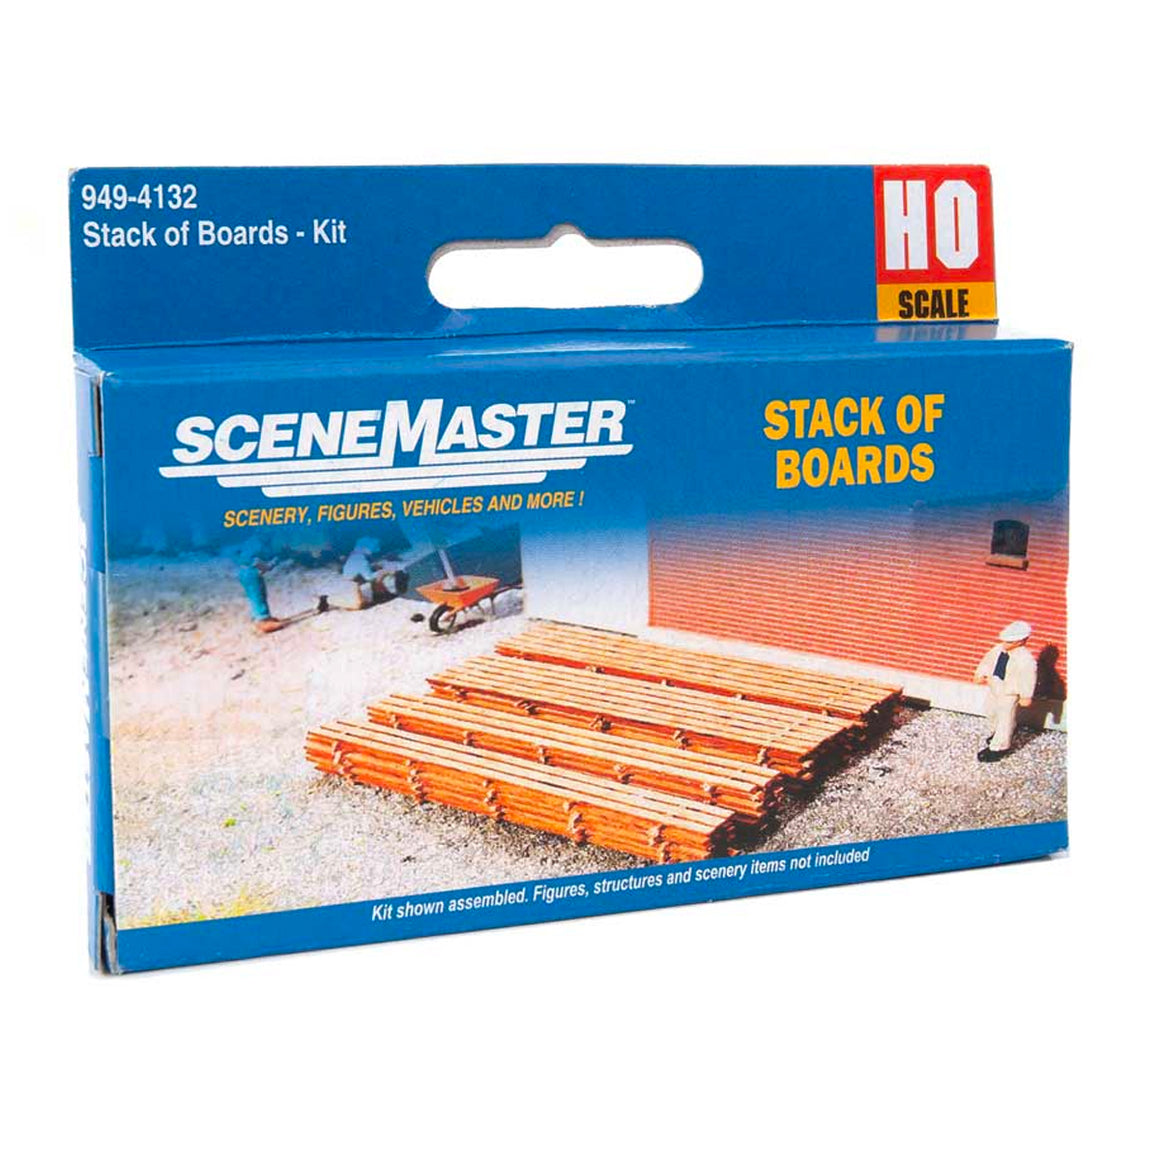 HO Scale: Stacks of Boards - Kit